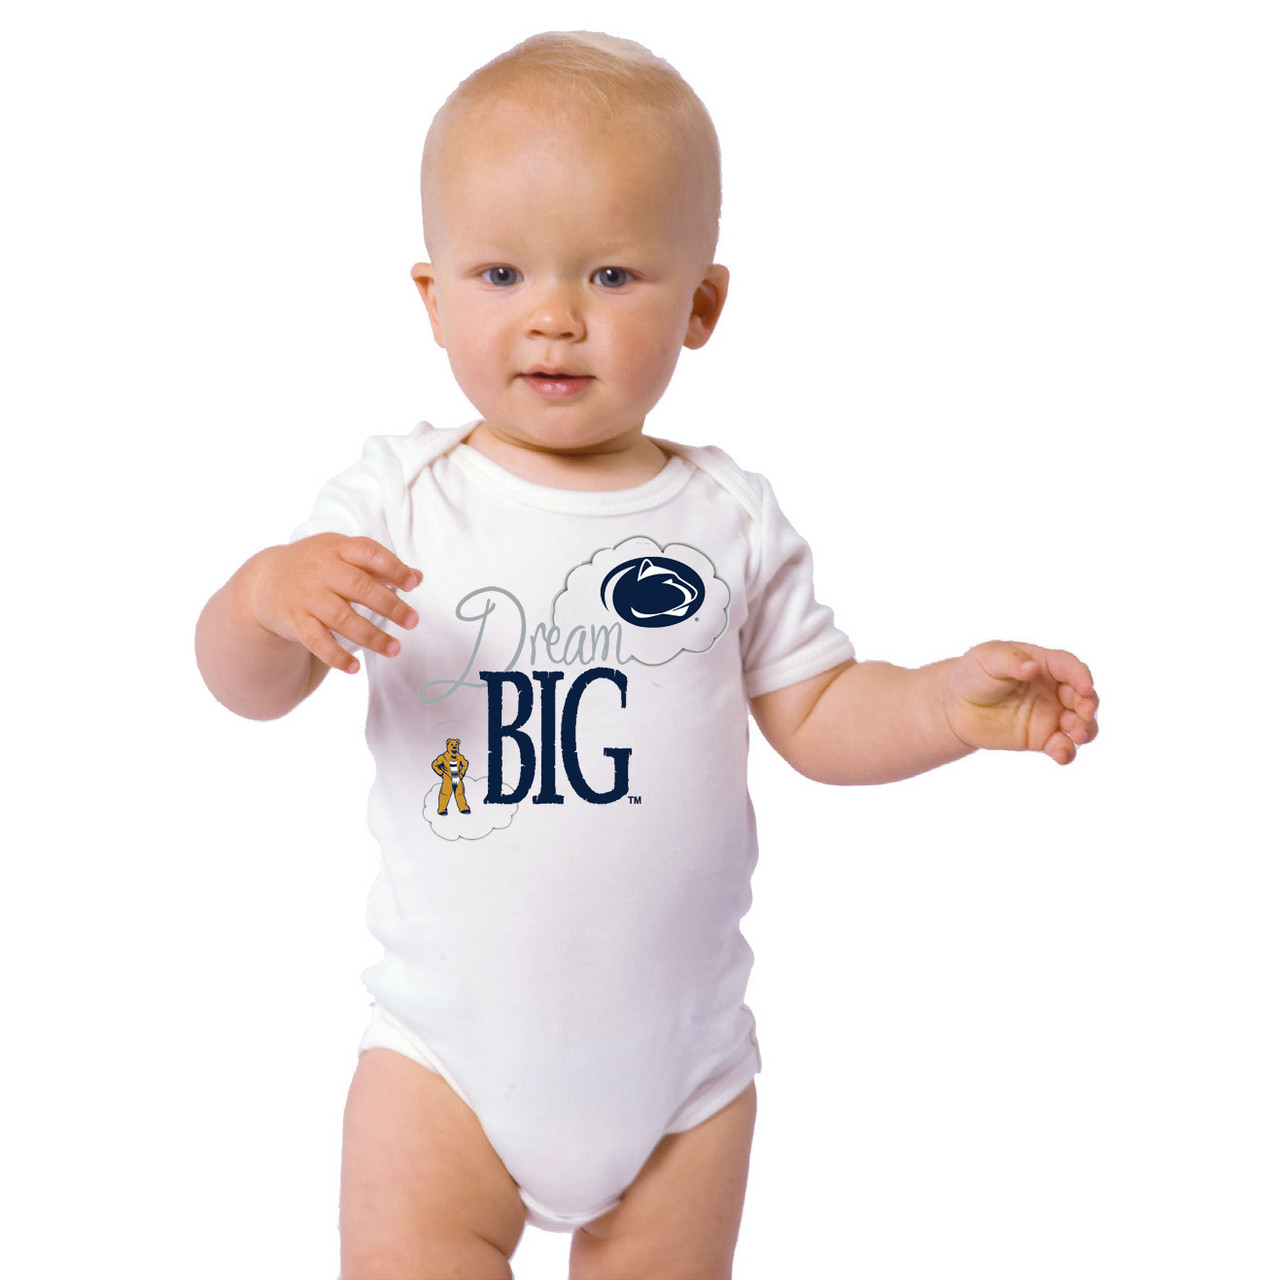 3319a3a84 Penn State Nittany Lions Dream Big Baby Onesie. Loading zoom